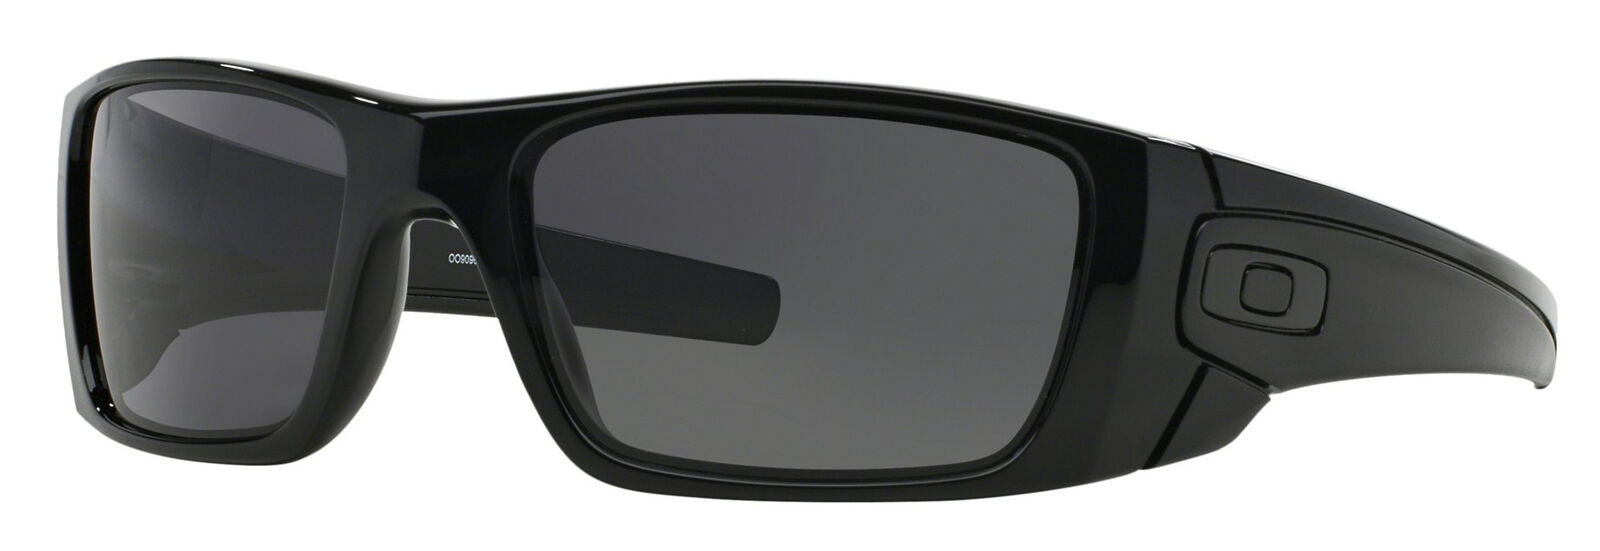 6dcb206eec74b Oakley Fuel Cell Sunglasses